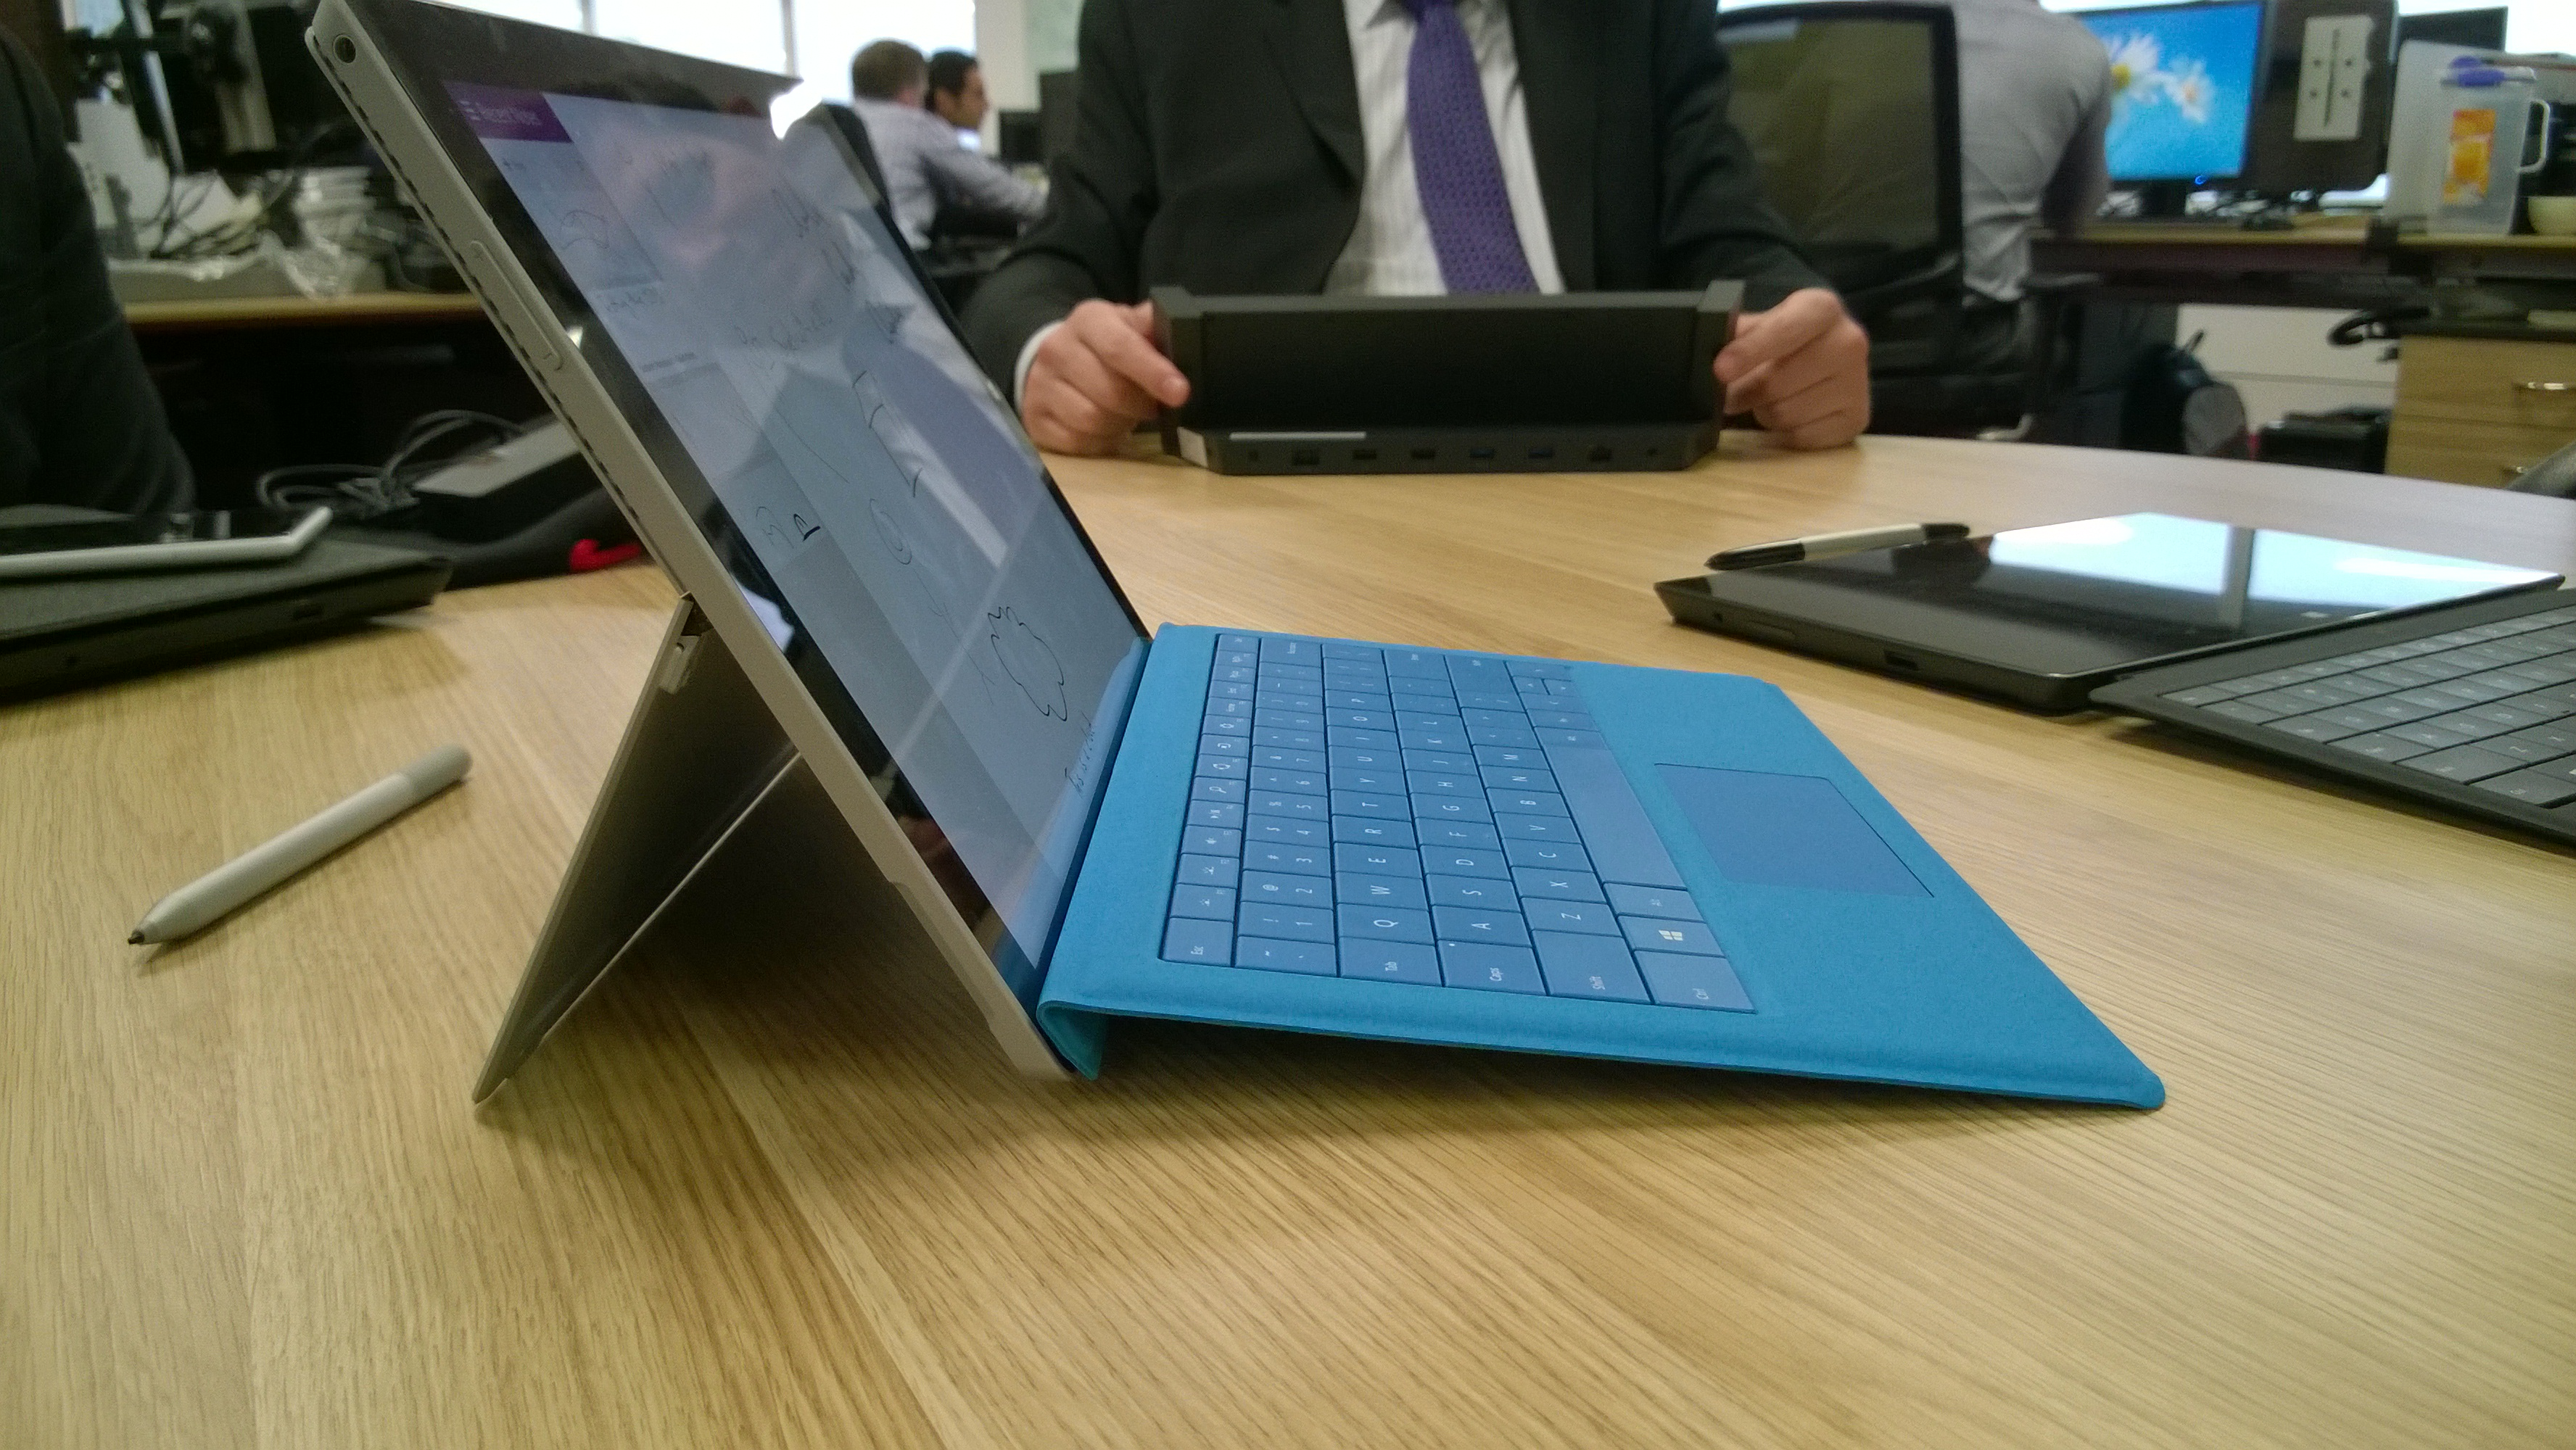 Surface Pro 3 kickstand and keyboard